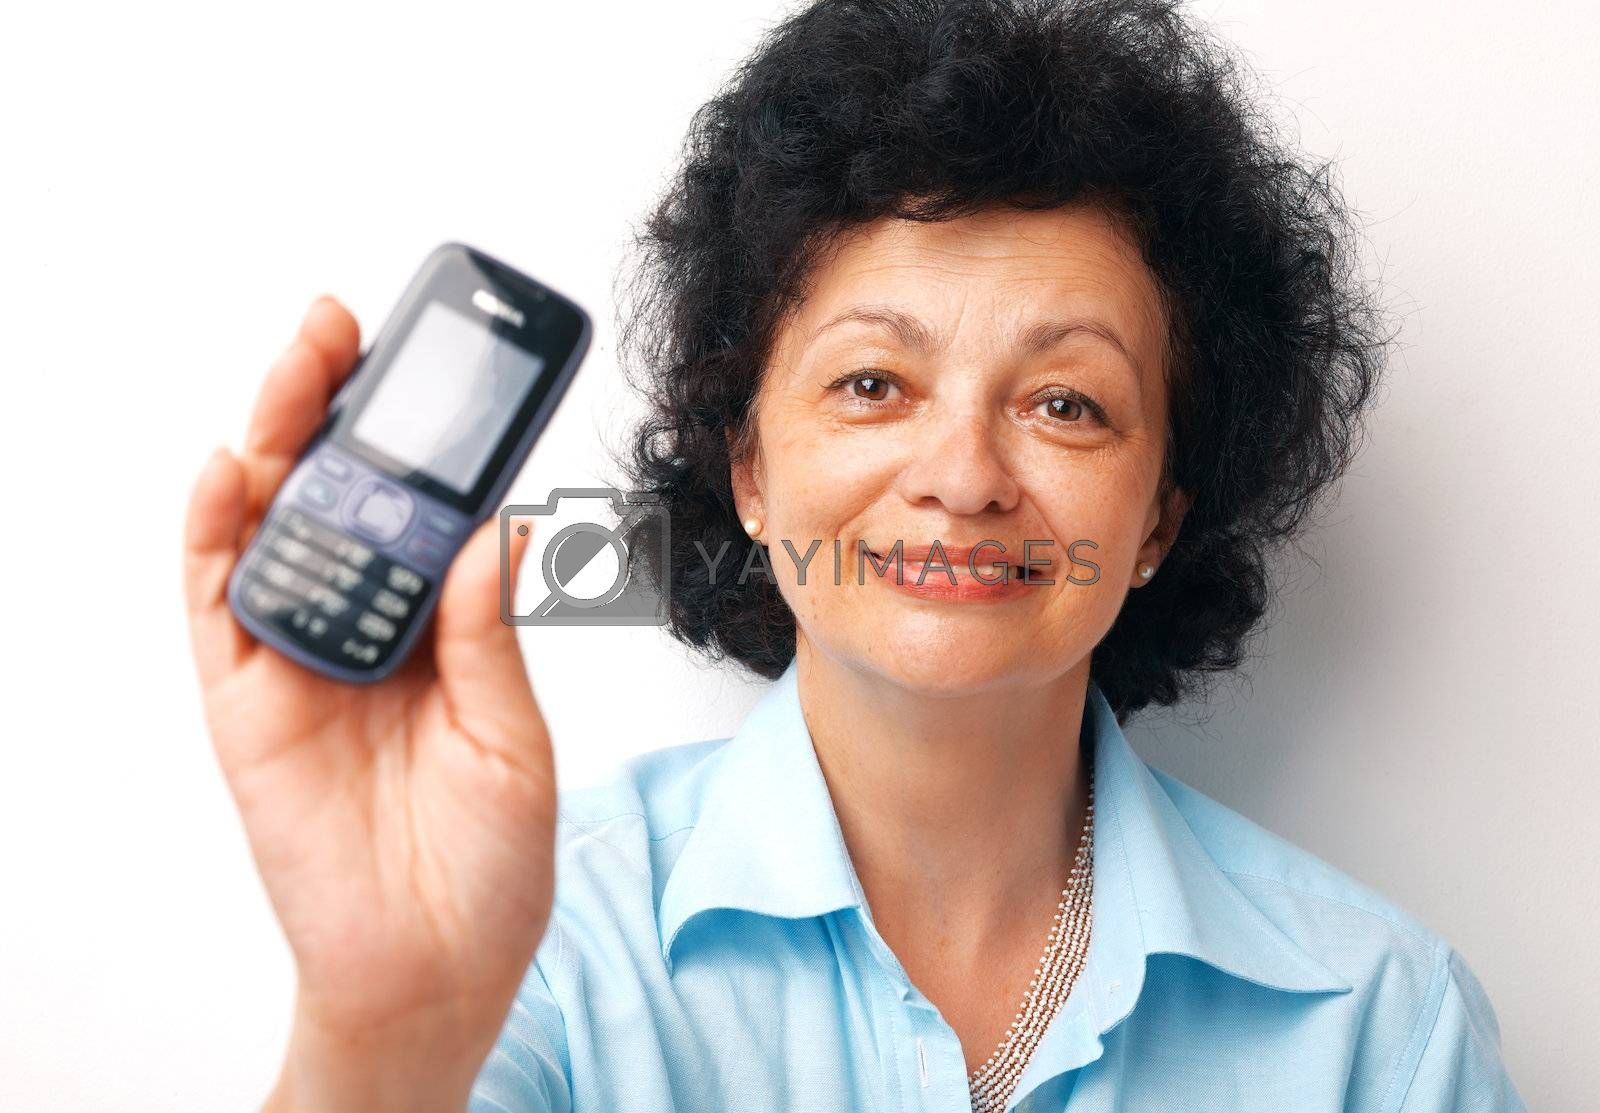 Close-up of an elder smiling woman holding and showing her mobile.